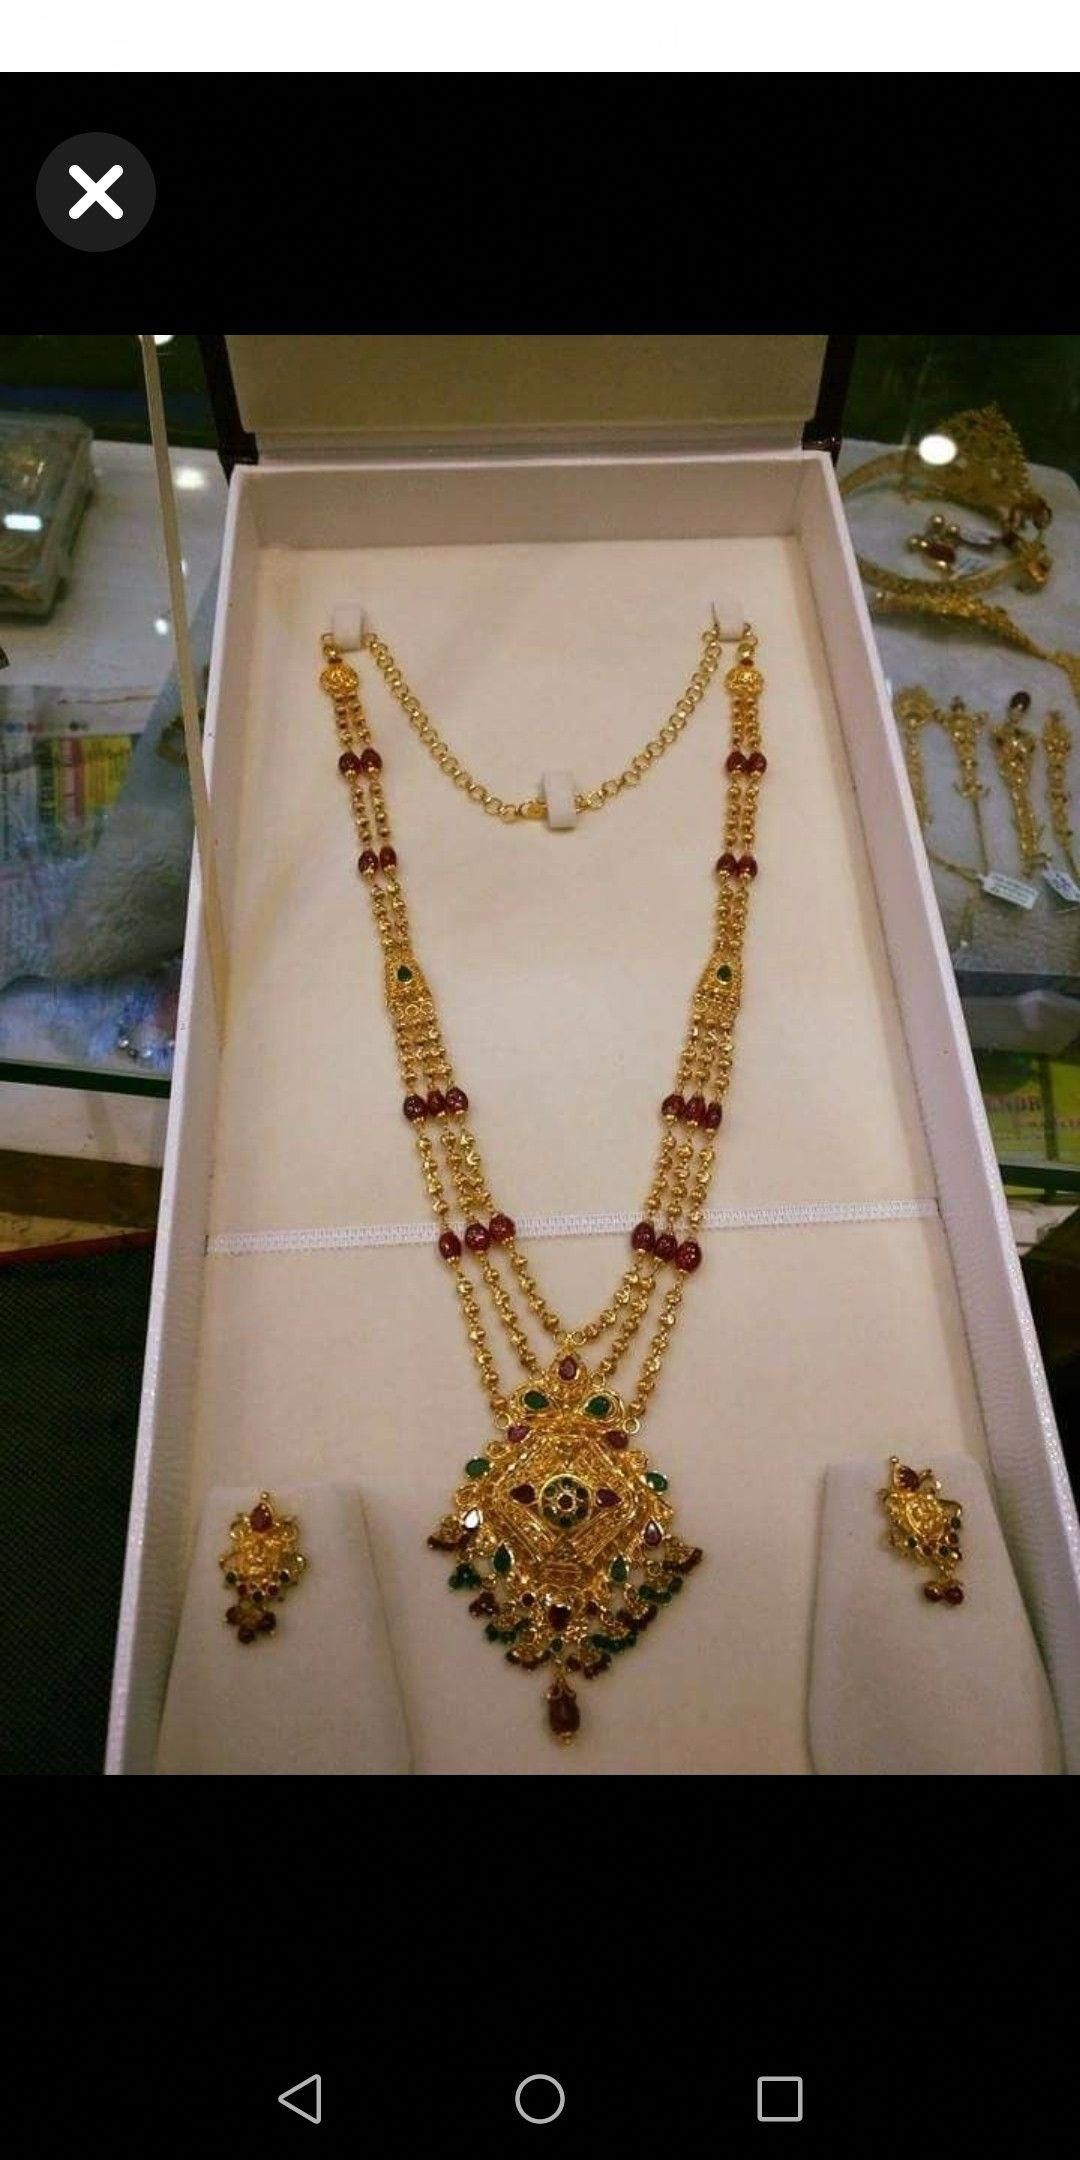 Jewellery Stores Rockingham Real Jewelry Stores Near Me